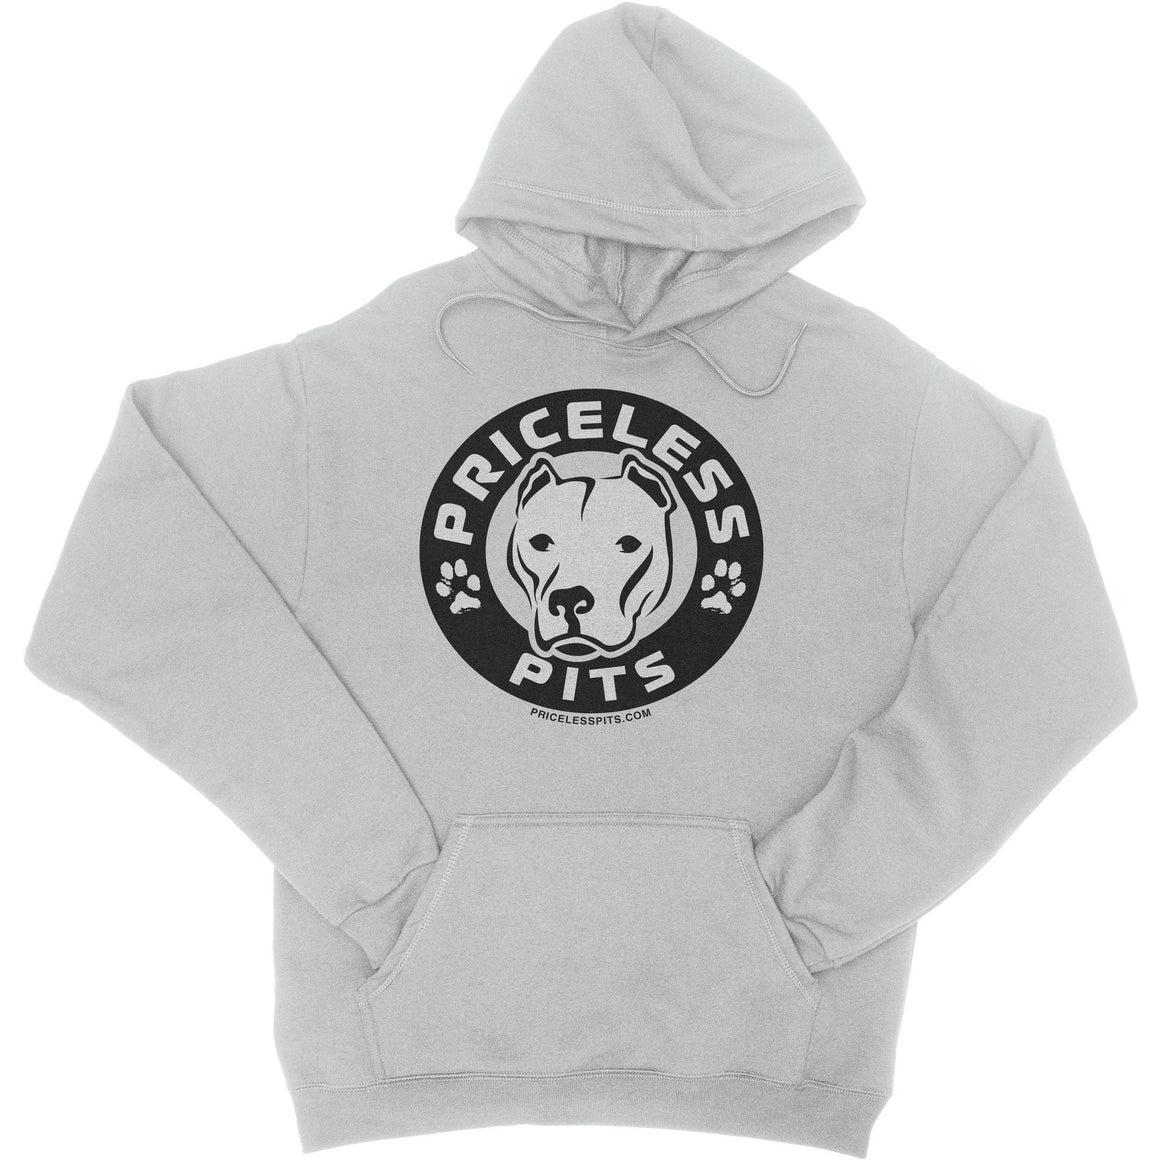 Priceless Pits Logo Ash Gray Pitbull Hoodie